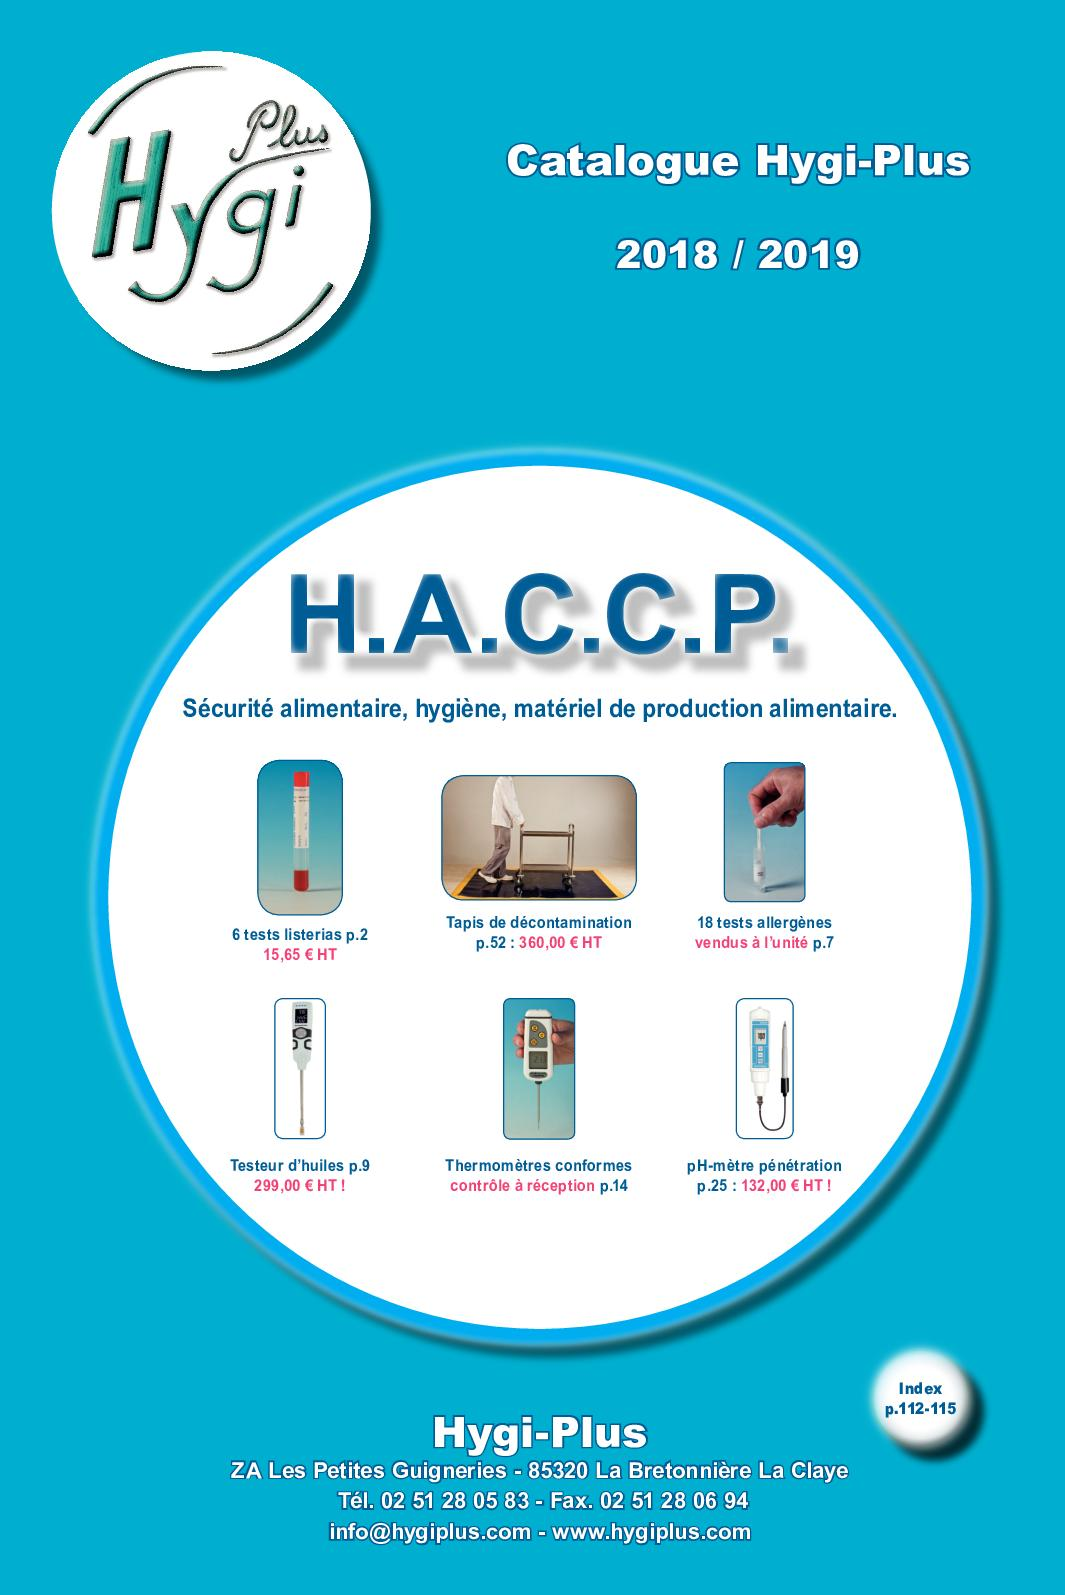 2018 Hygiplus Calaméo 2019 2018 Hygiplus Catalogue 2019 Calaméo Catalogue c5L3RqAj4